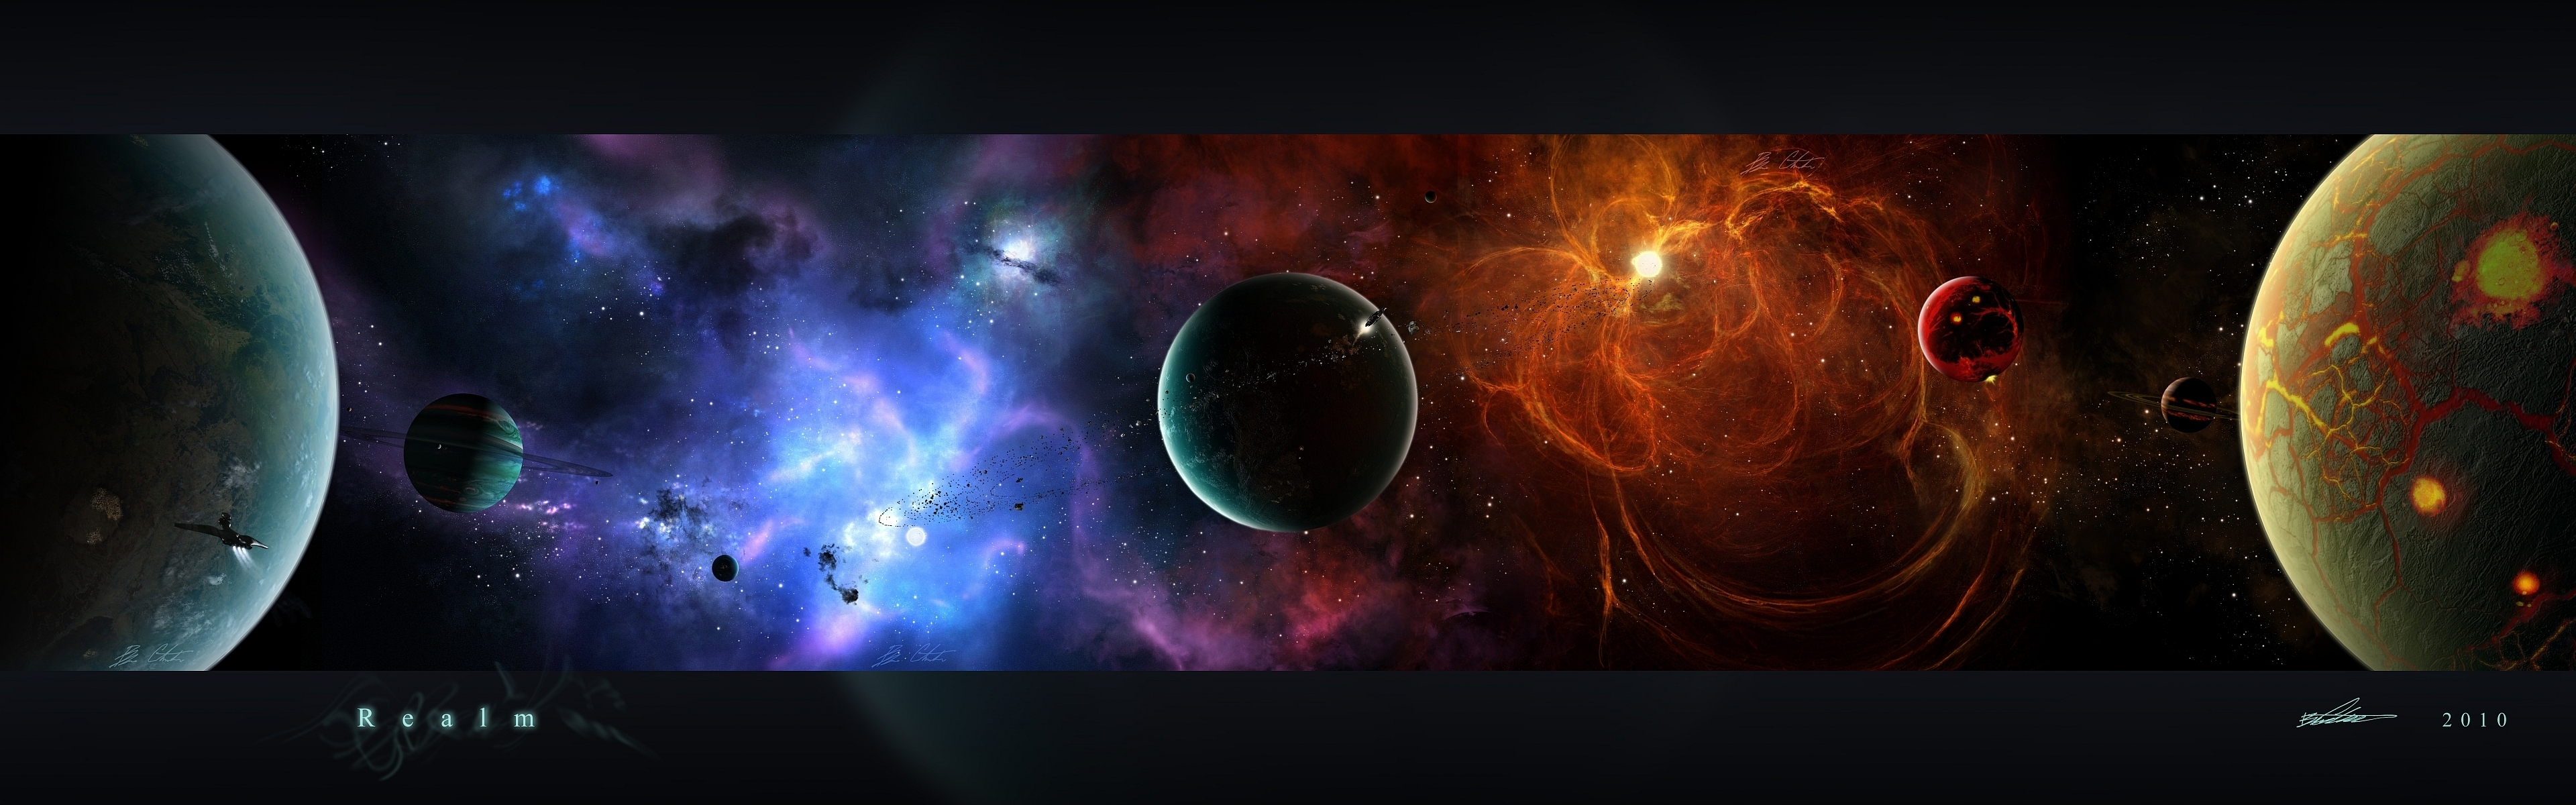 outer space 3840x1200 wallpaper Wallpaper Wallpapers Download 3840x1200